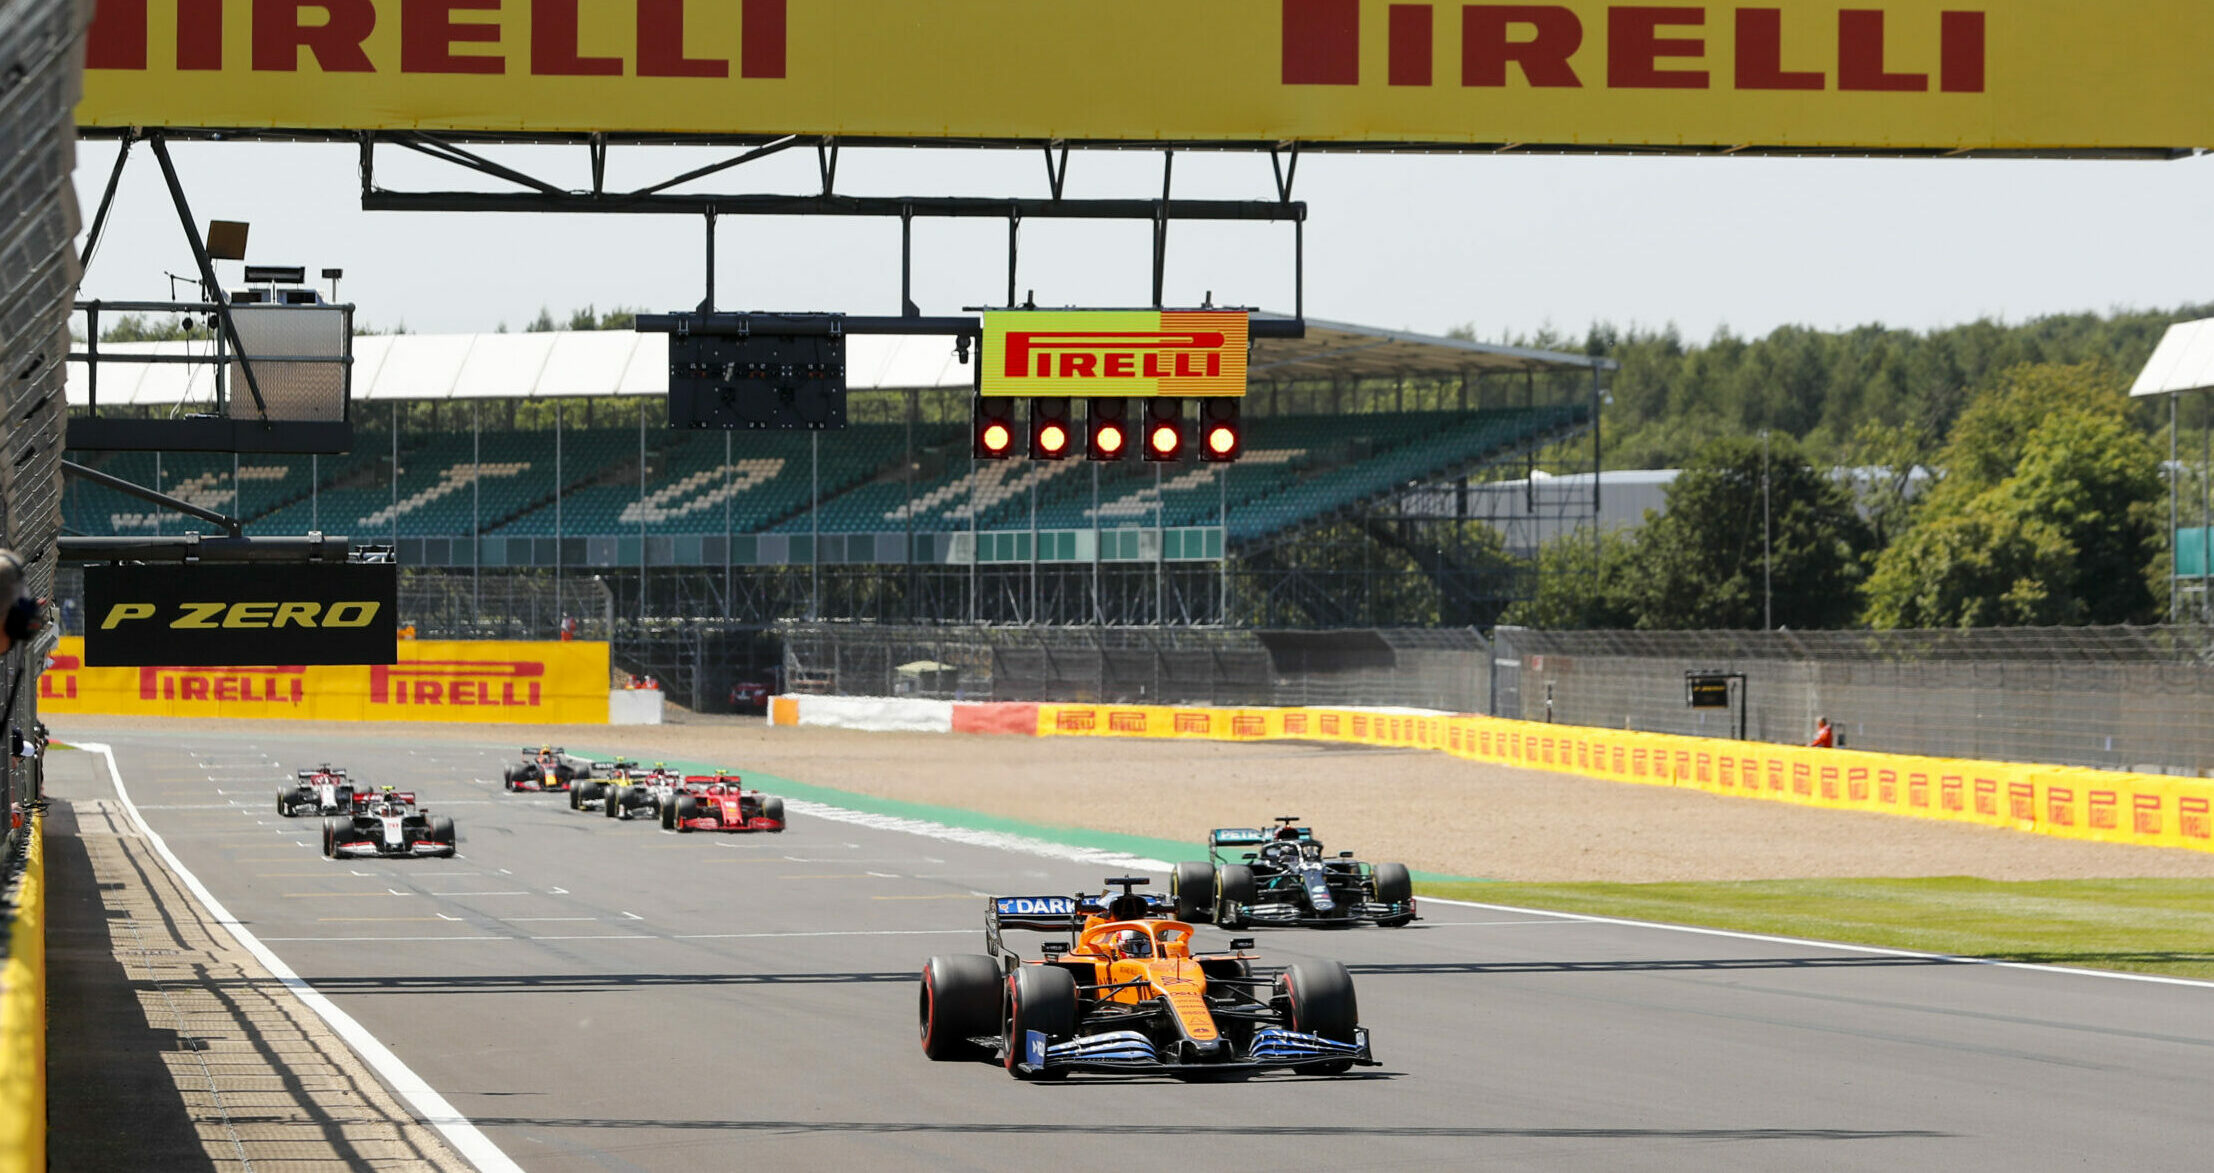 """F1 on the table for British GP: """"No Sprint Race"""""""